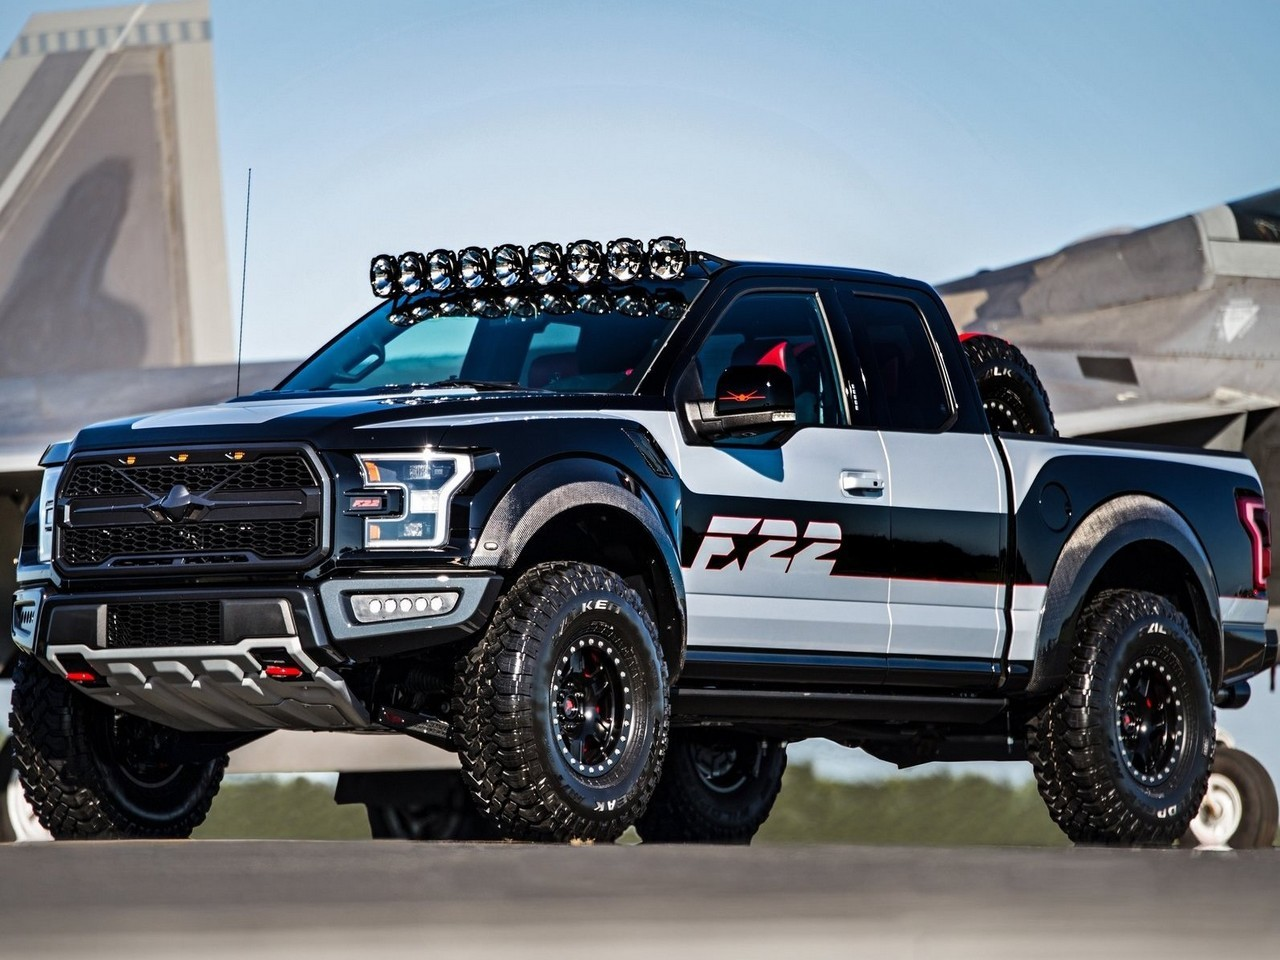 ford f150 raptor f22 concept version unique vendue aux ench res. Black Bedroom Furniture Sets. Home Design Ideas